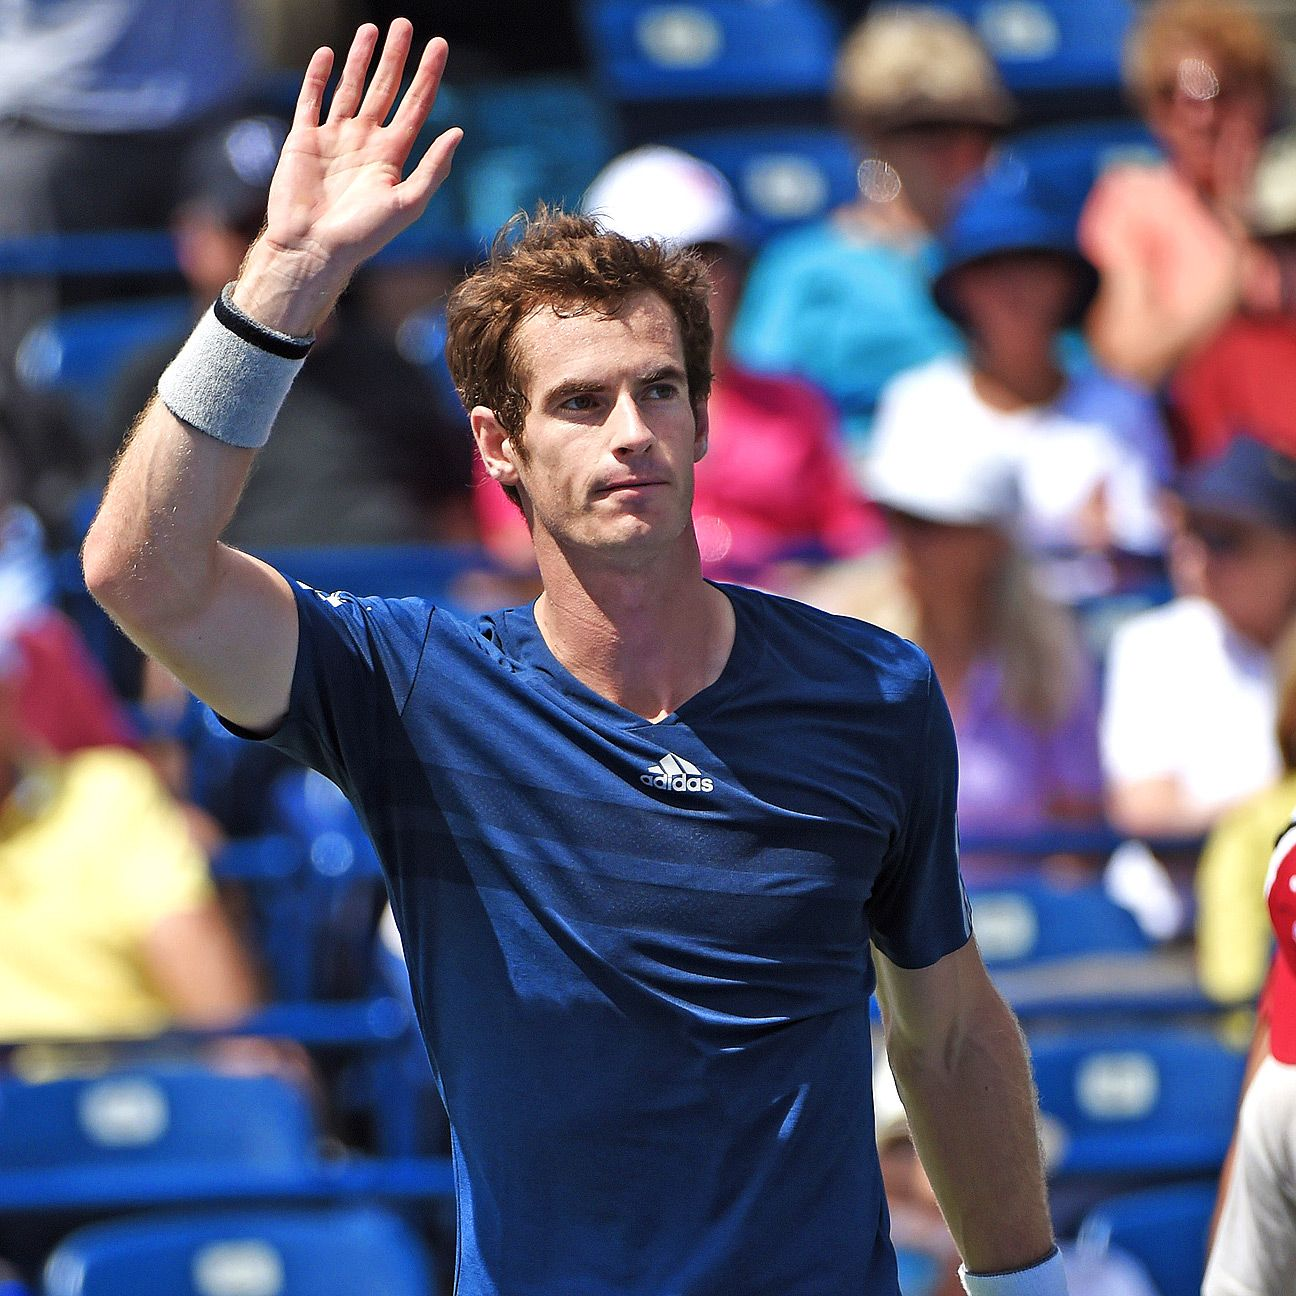 Andy Murray: Andy Murray Signs 4-year Clothing Deal With Under Armour